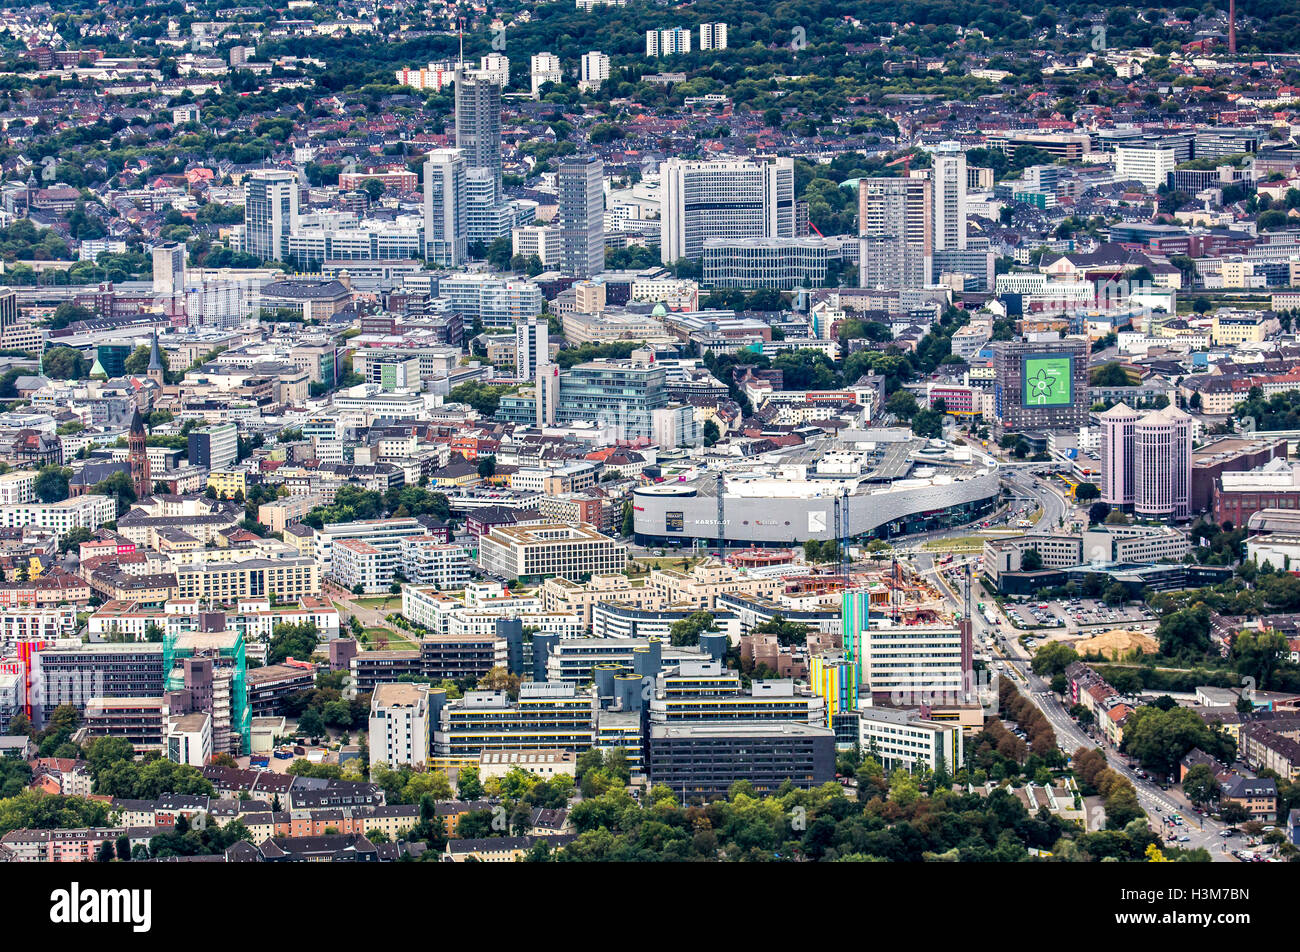 areal shot of the city of essen germany city center downtown area stock photo 122761401 alamy. Black Bedroom Furniture Sets. Home Design Ideas